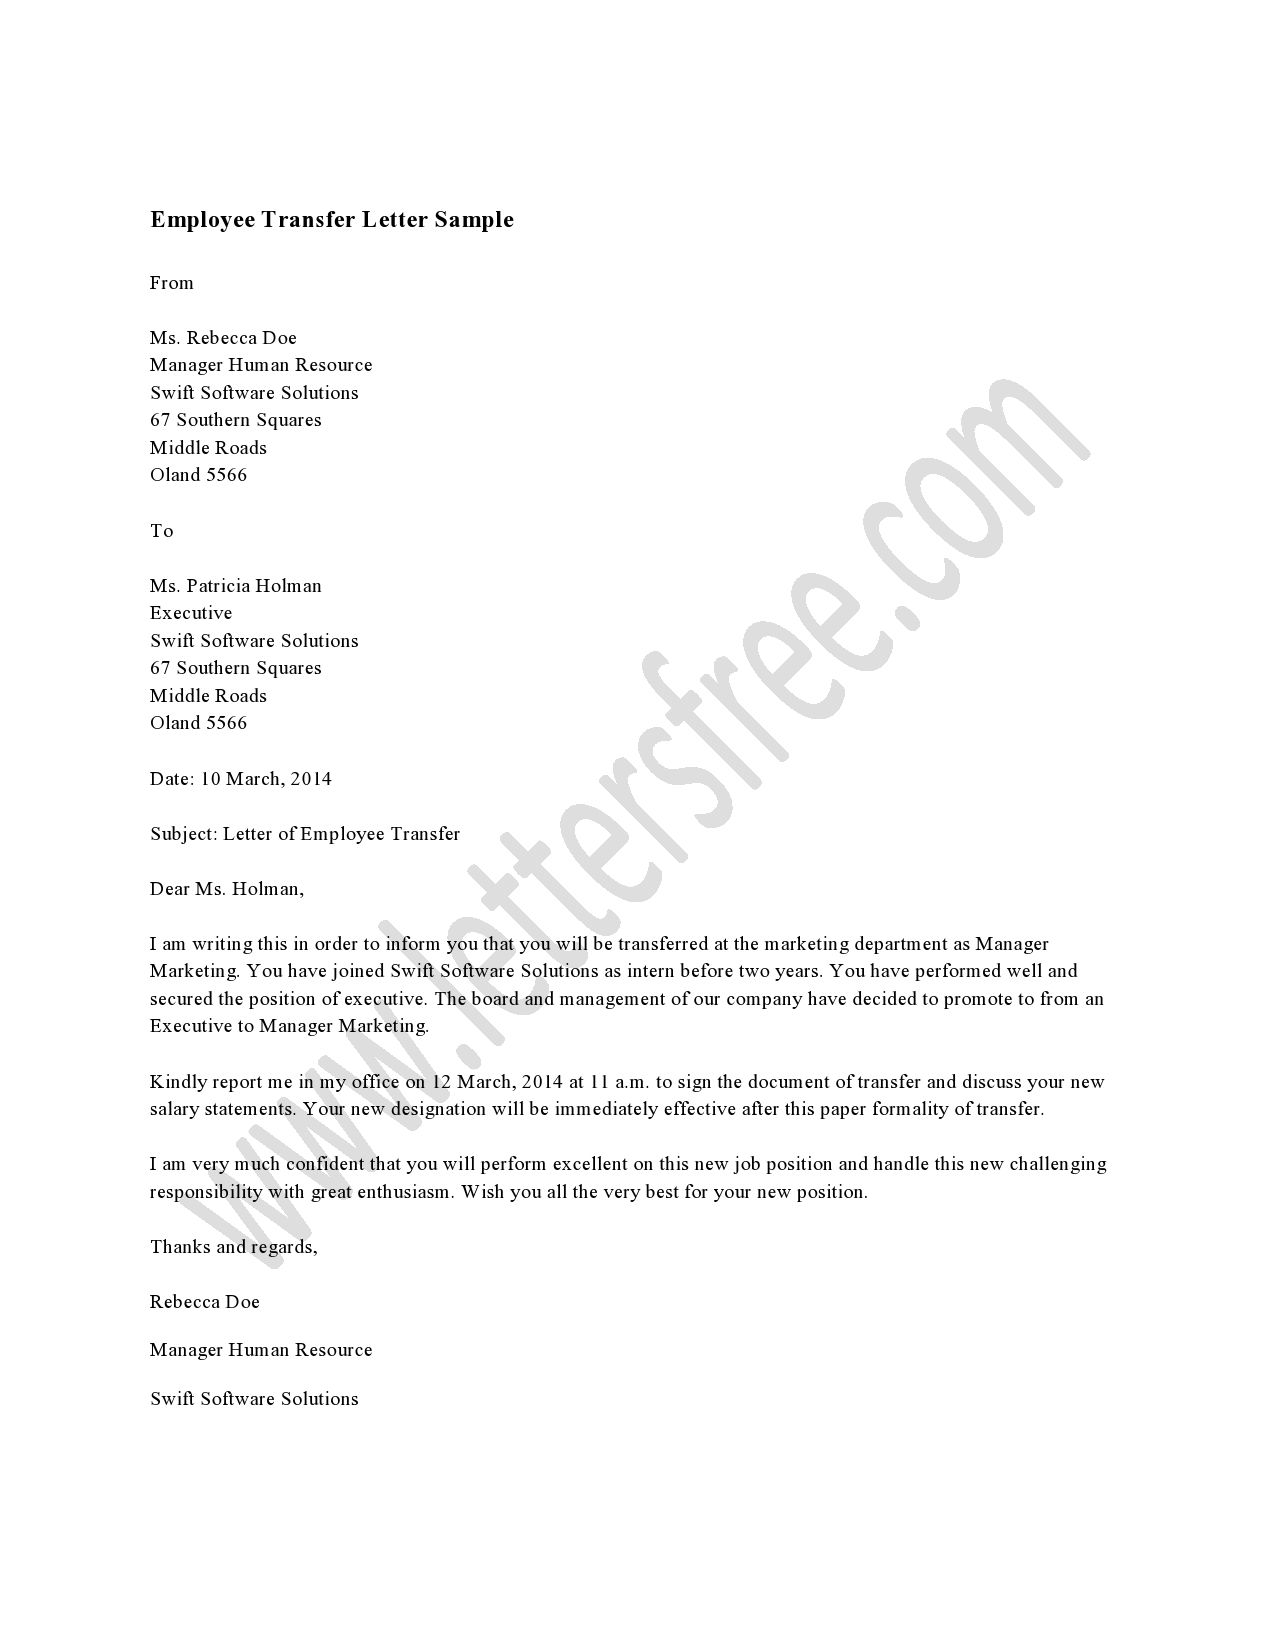 Employee Transfer Letter Is Written To Notify The Employee About